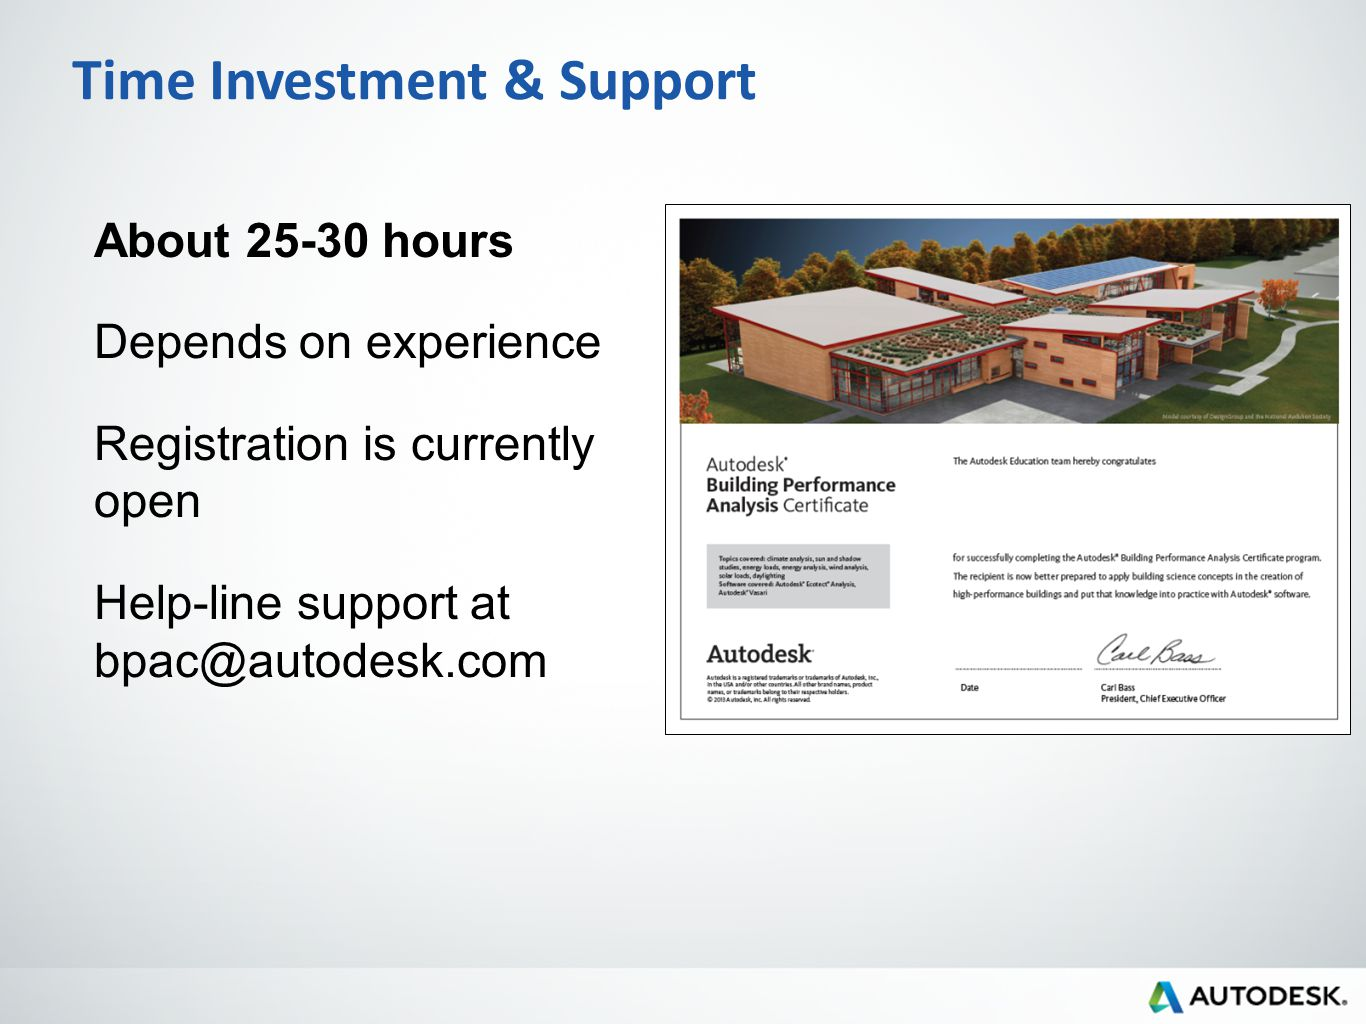 2013 autodesk autodesk building performance analysis certificate 6 time investment support about 25 30 hours depends on experience registration is currently open help line support at bpacautodesk 1betcityfo Image collections